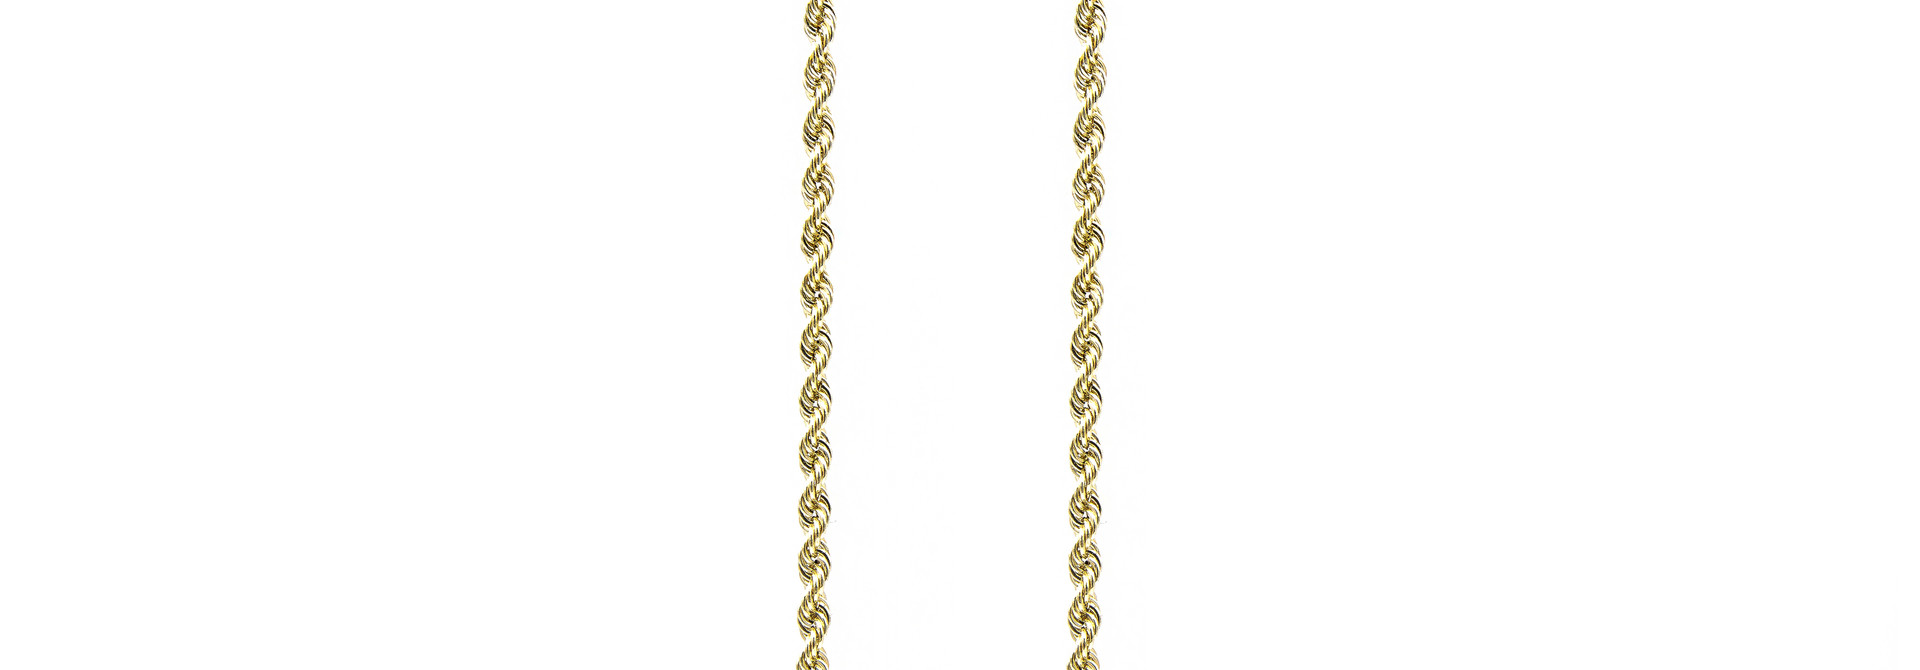 Rope Chain 14k-3mm